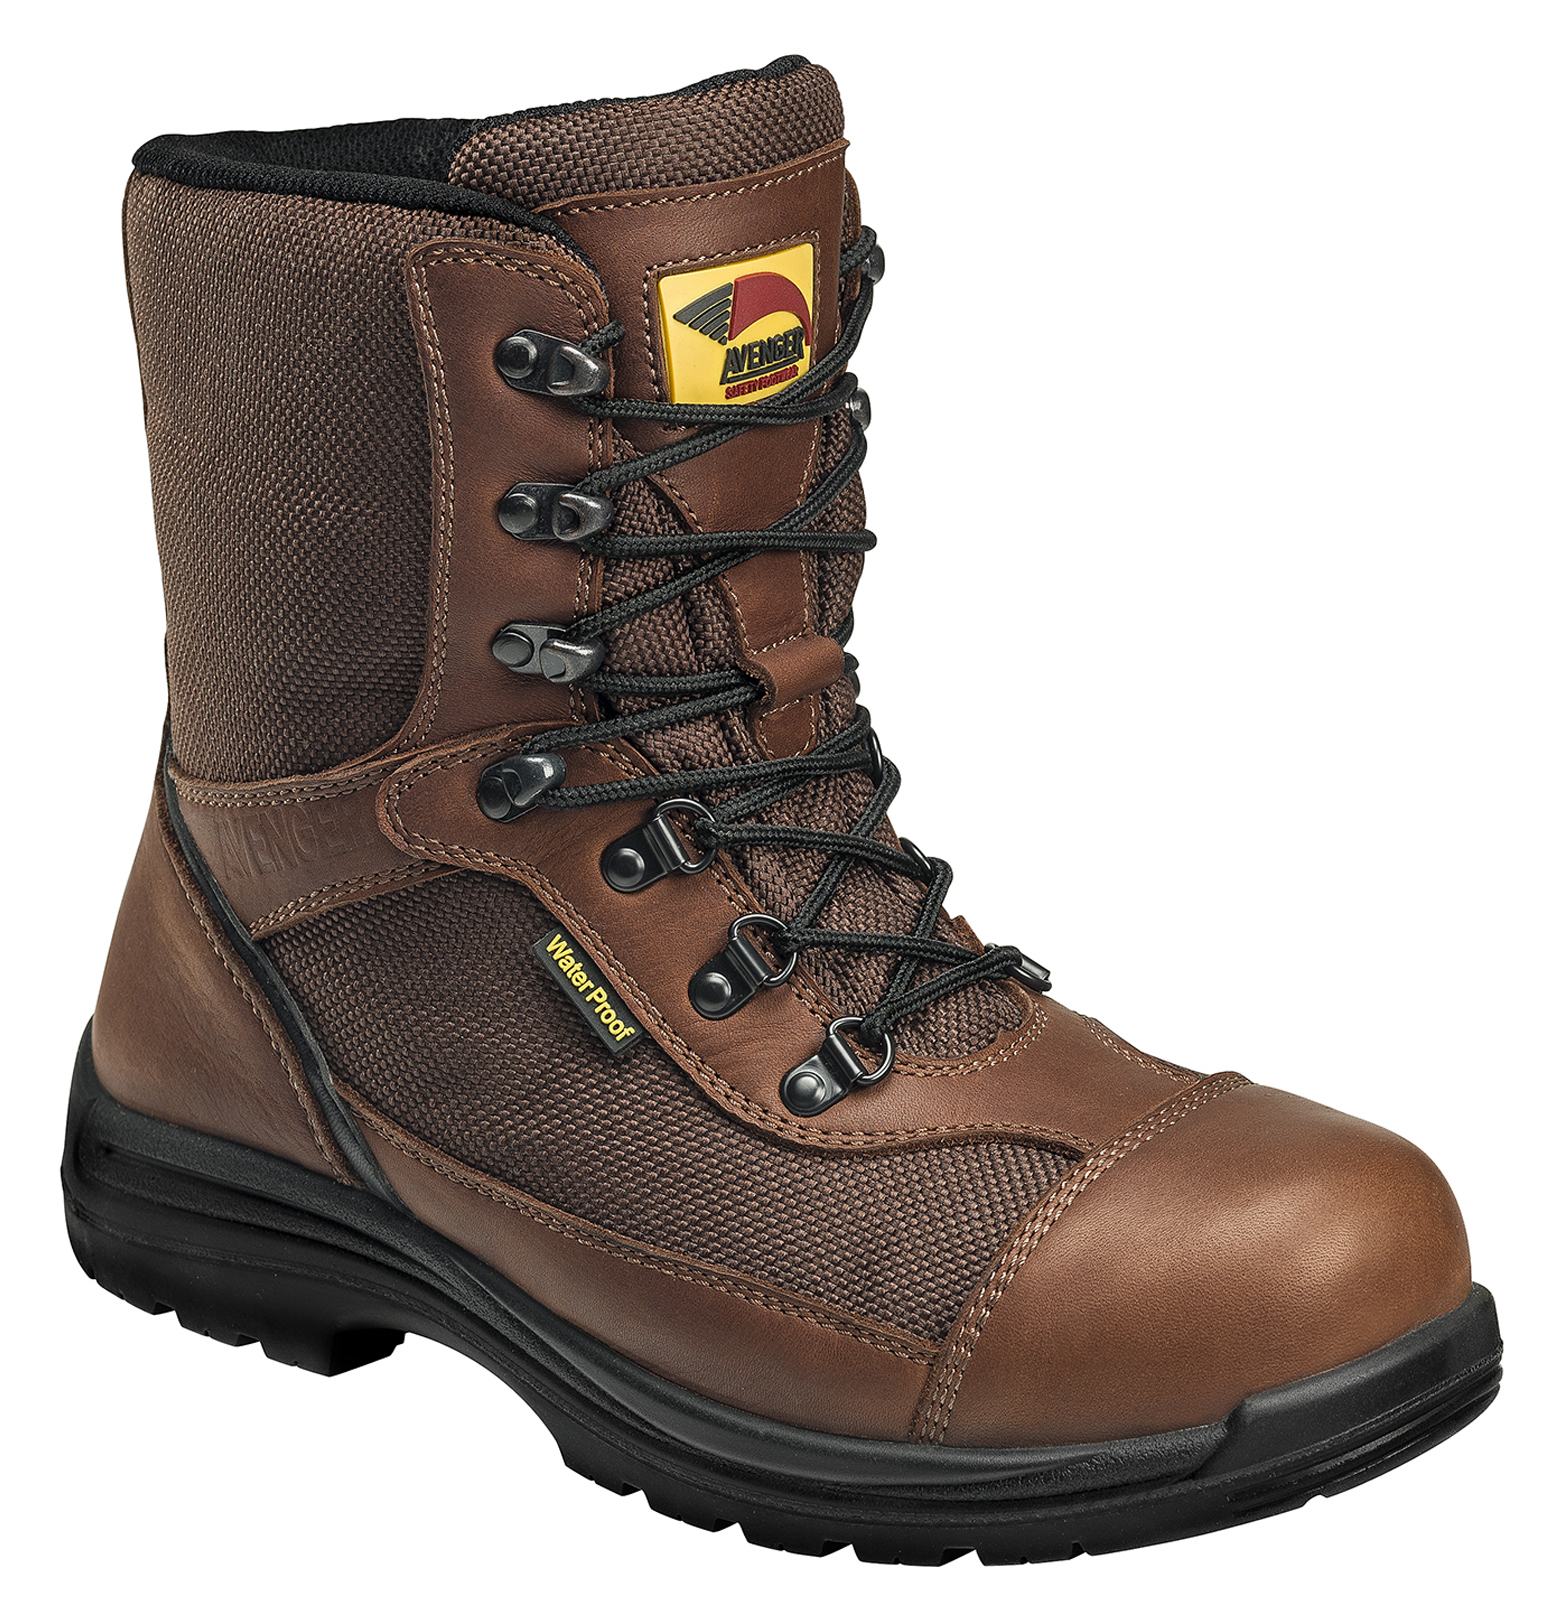 latest for whole family 2019 professional Avenger Boots Men's Waterproof Insulated Work Boots - Composite Toe